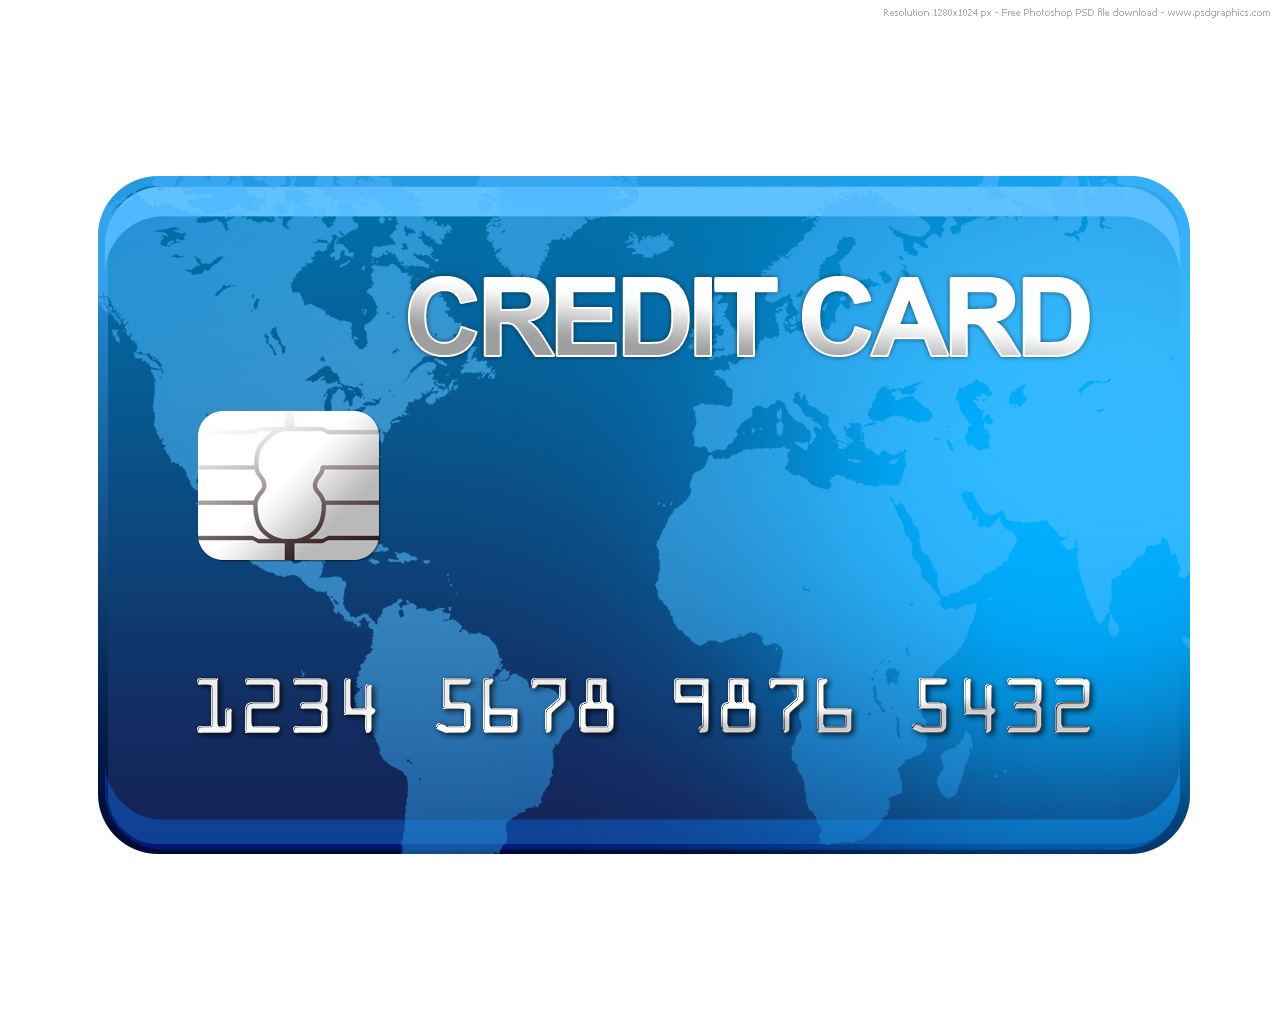 16 PSD Of A Credit Card Images